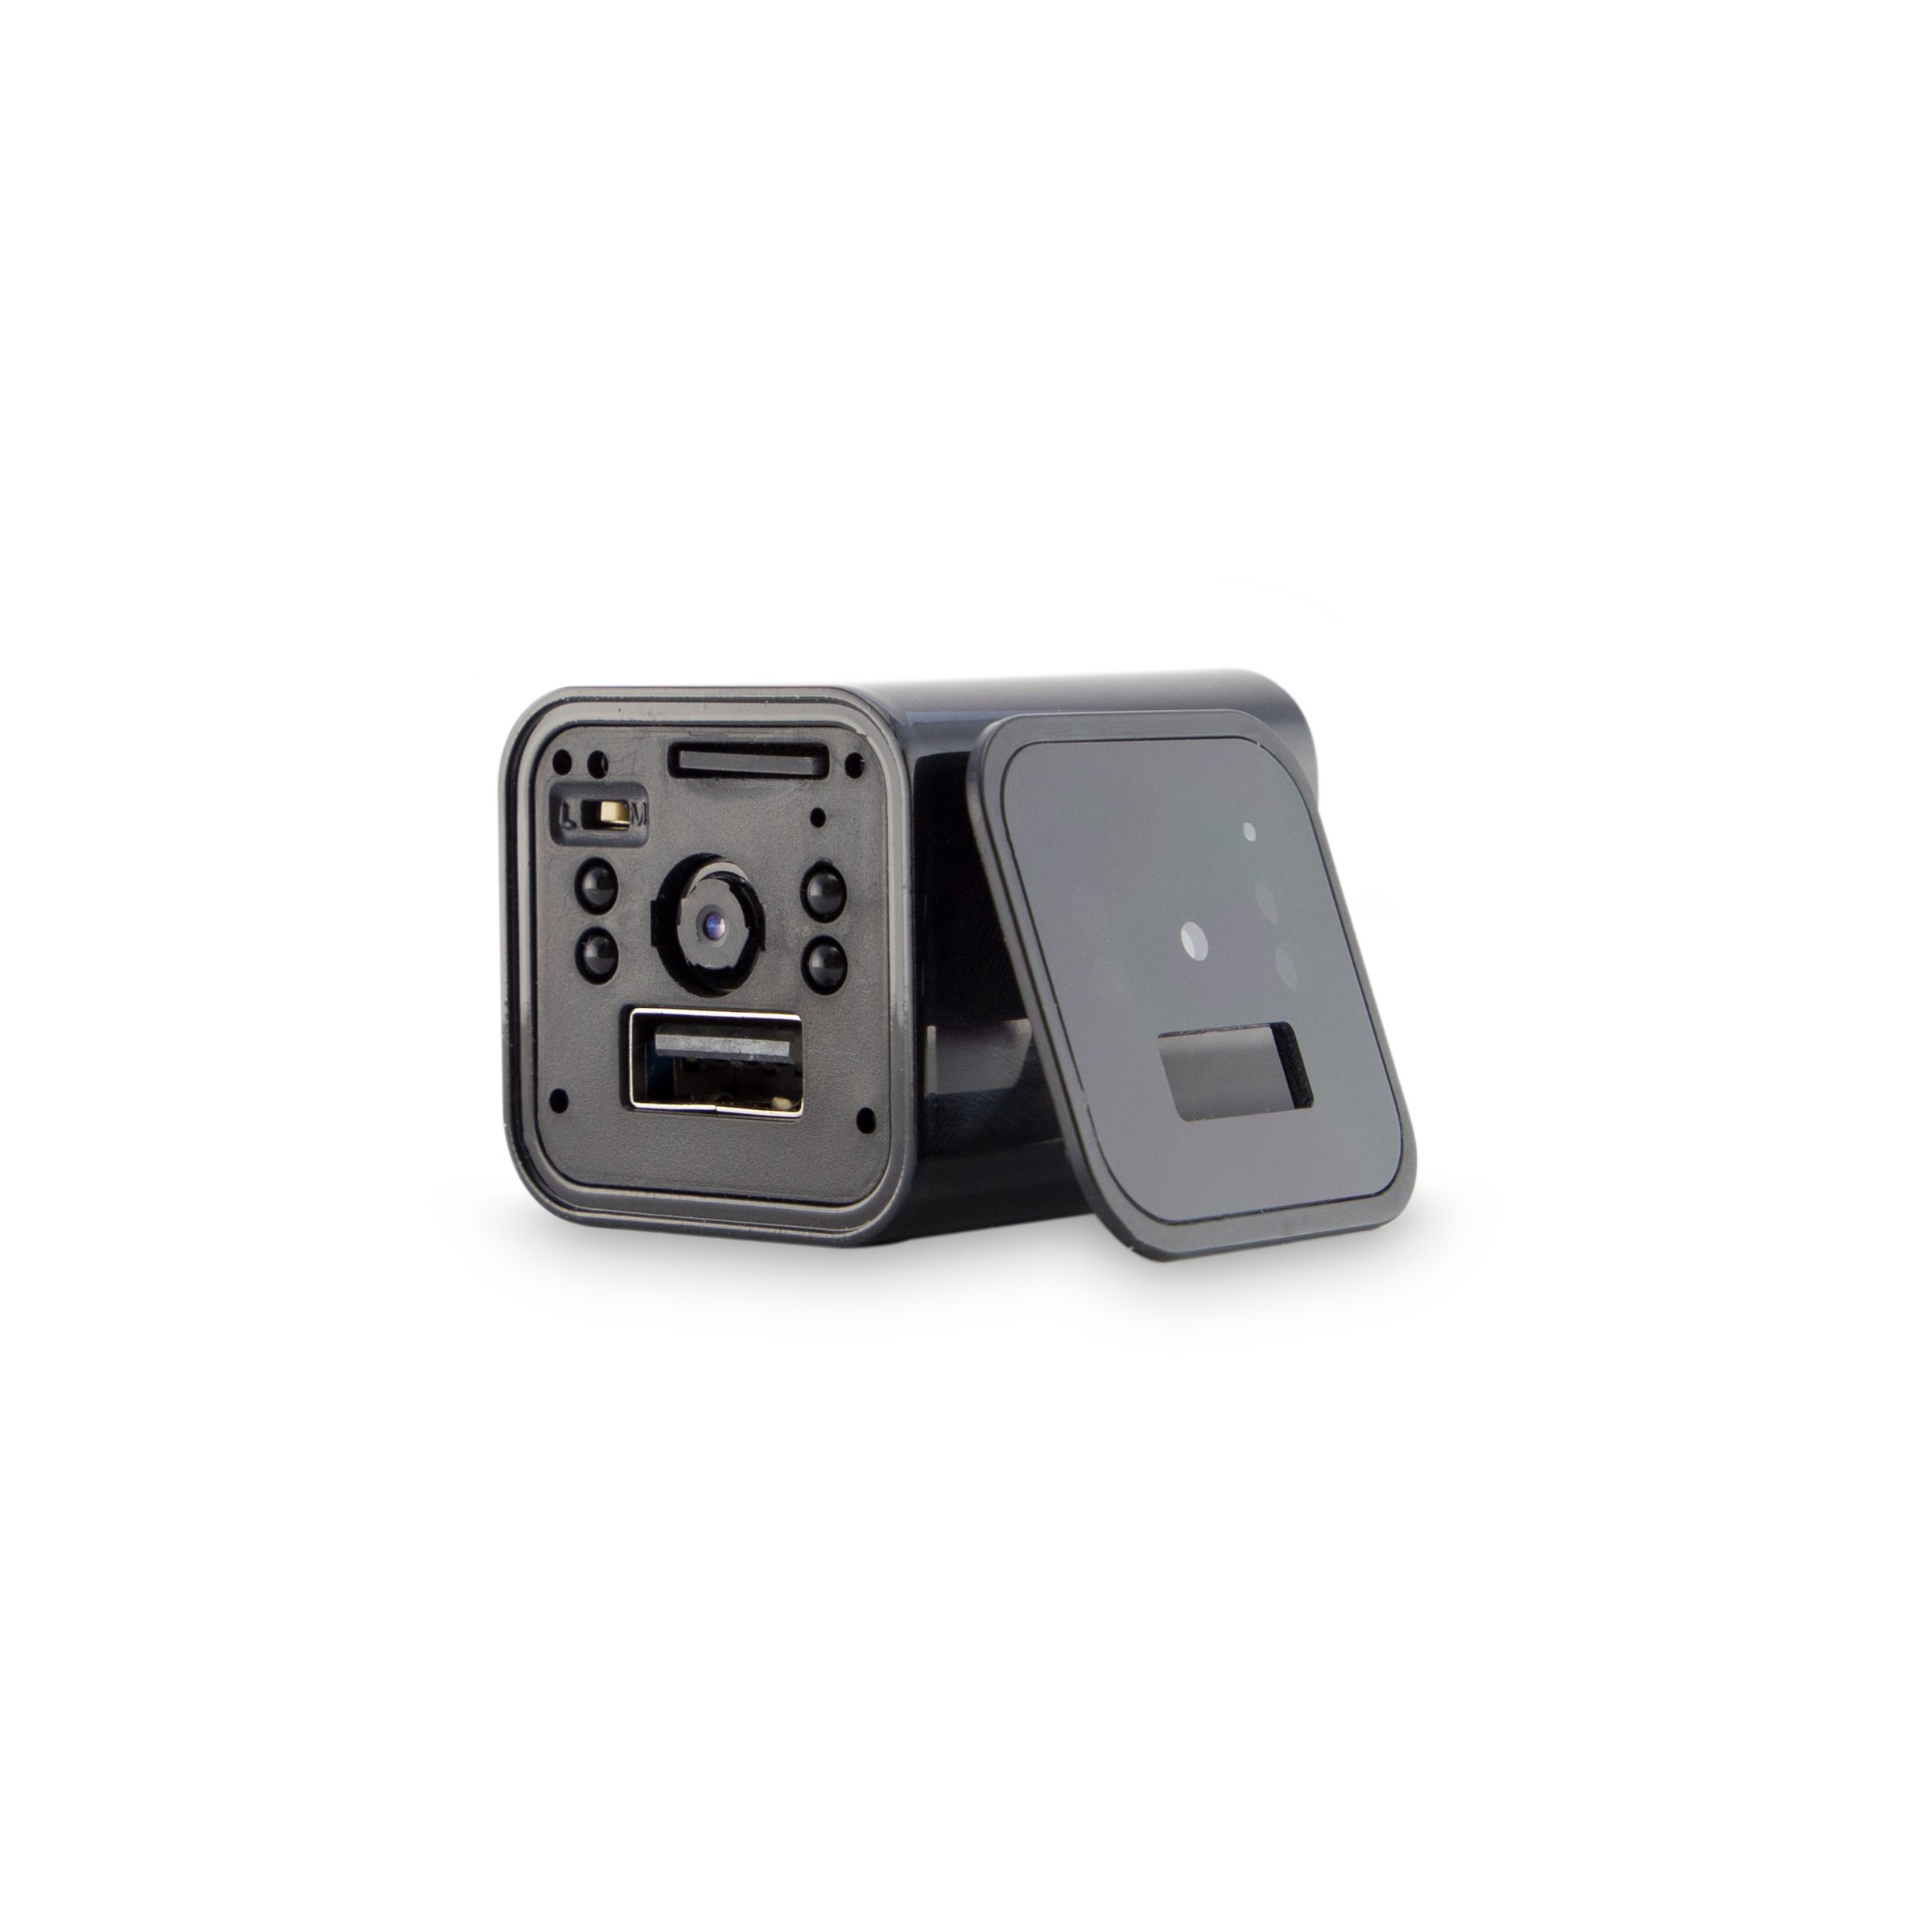 Hidden Camera USB Phone Charger Night Vision - Wall Plug Mini Security Spy Camera (Black) Carrying Case - Audio Video Recording Home Surveillance